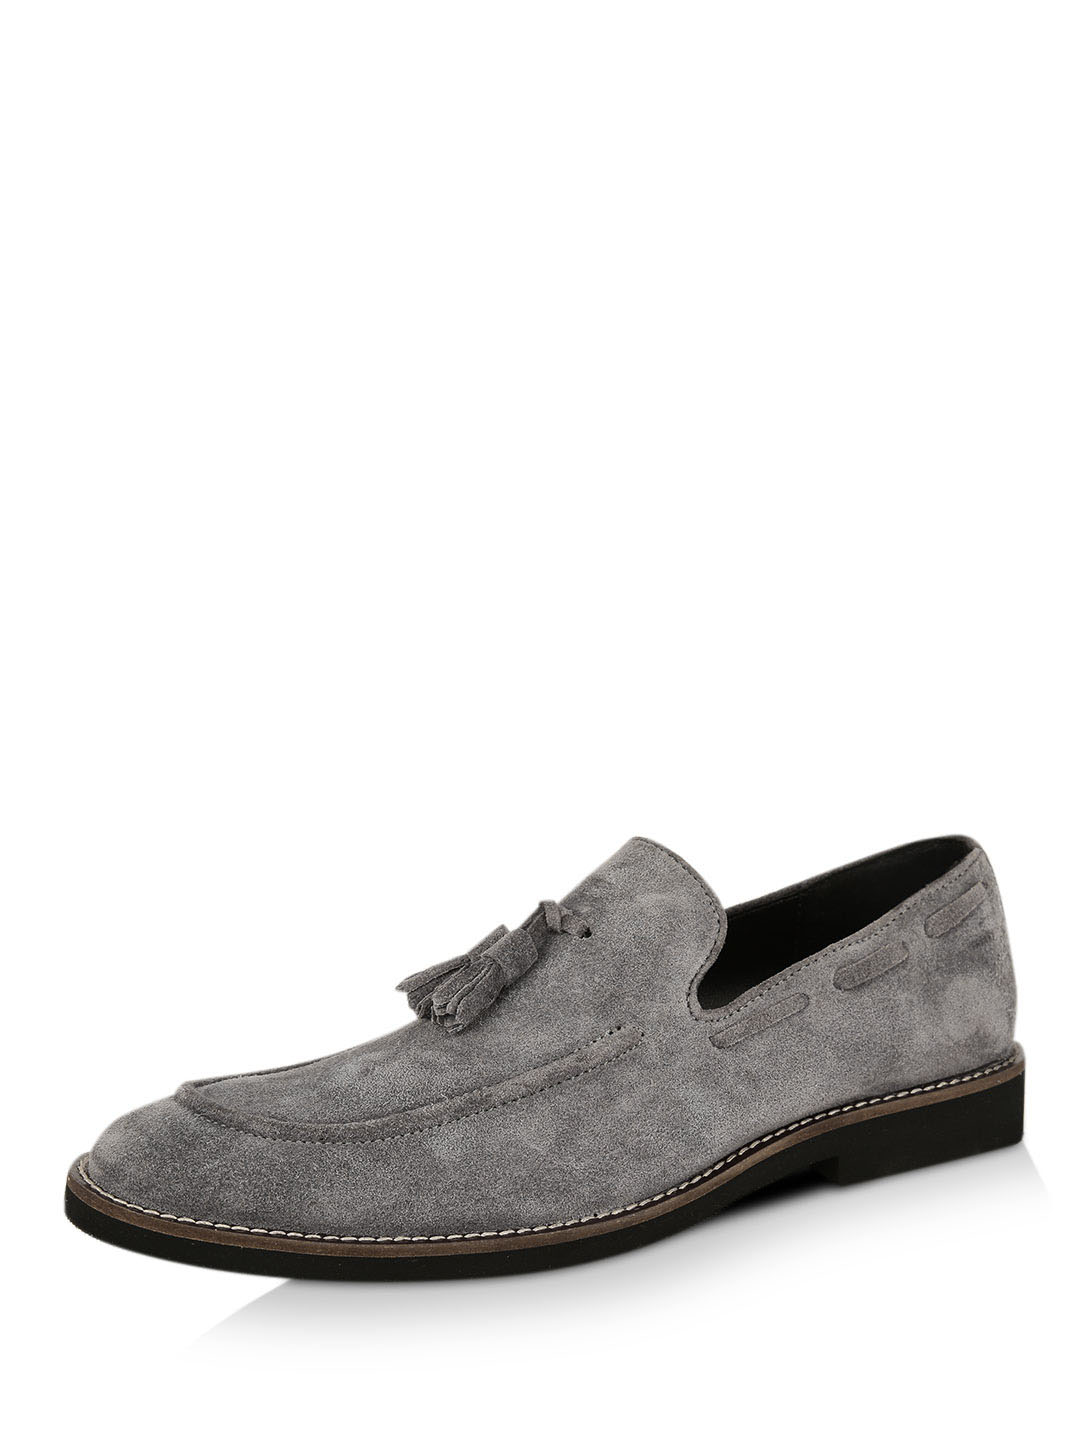 Griffin Suede Tassled Loafers...